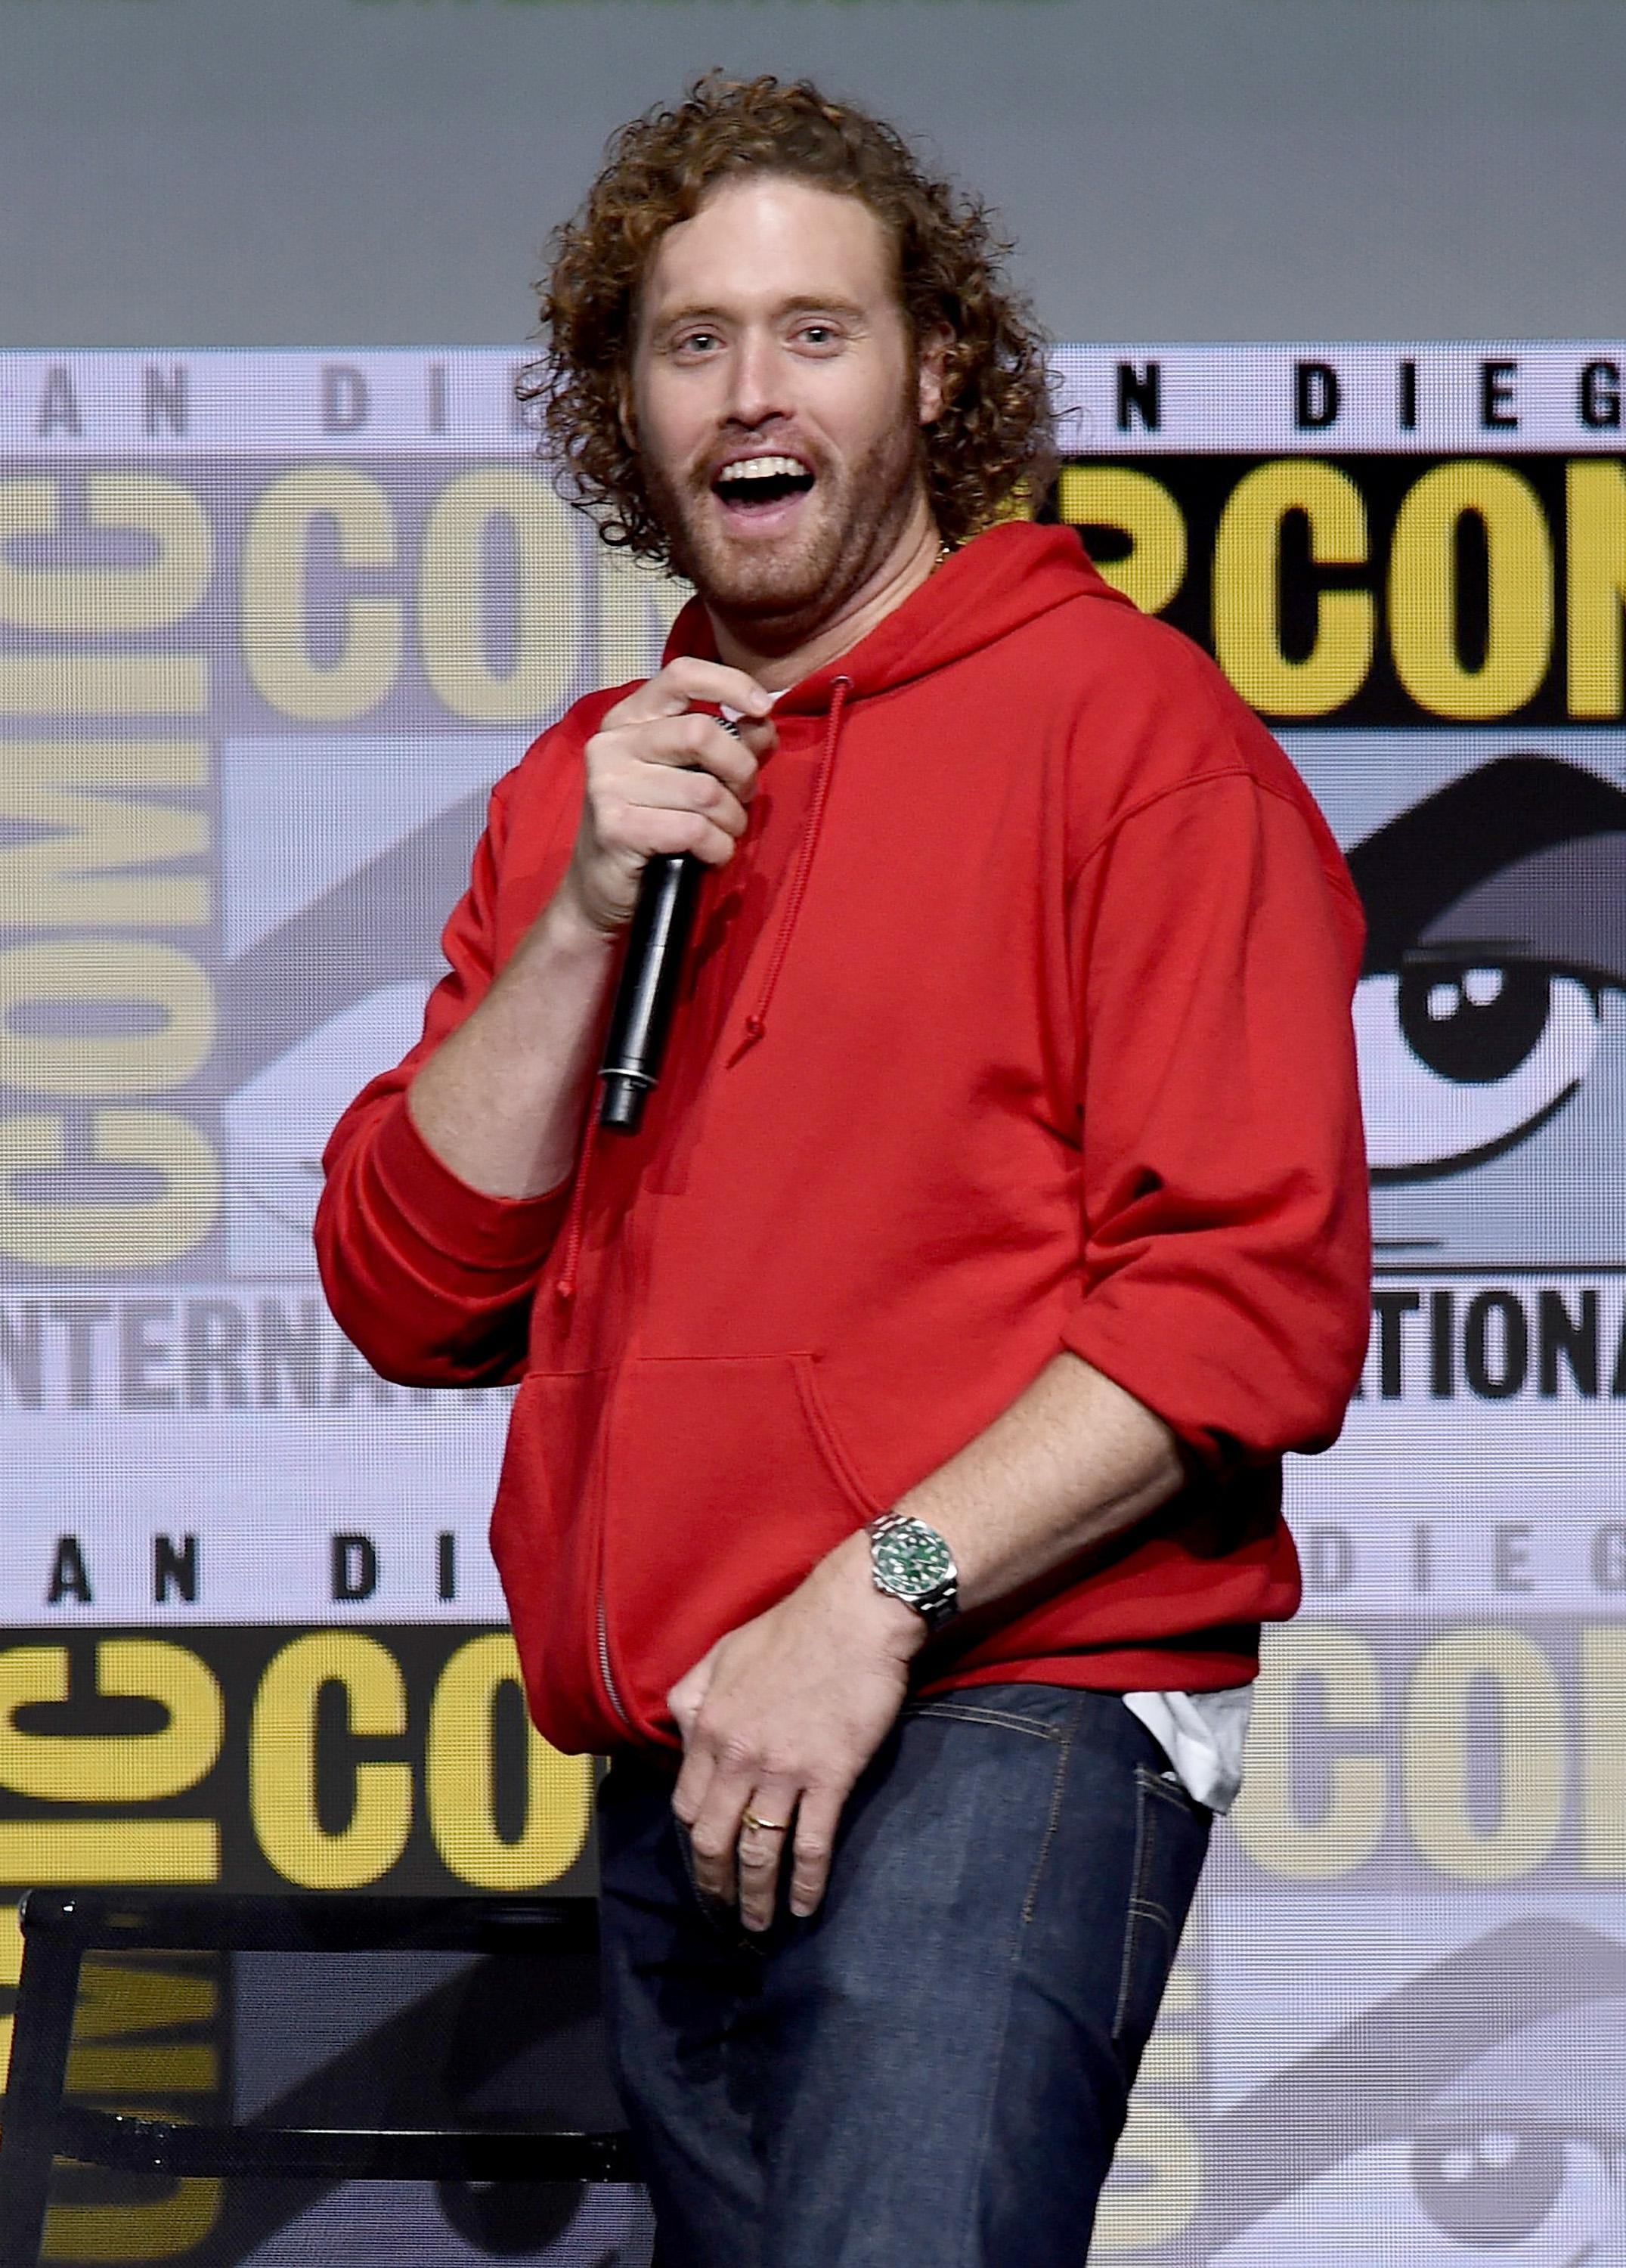 SAN DIEGO, CA - JULY 22:  Actor T.J. Miller attends the Warner Bros. Pictures Presentation during Comic-Con International 2017 at San Diego Convention Center on July 22, 2017 in San Diego, California.  (Photo by Kevin Winter/Getty Images)